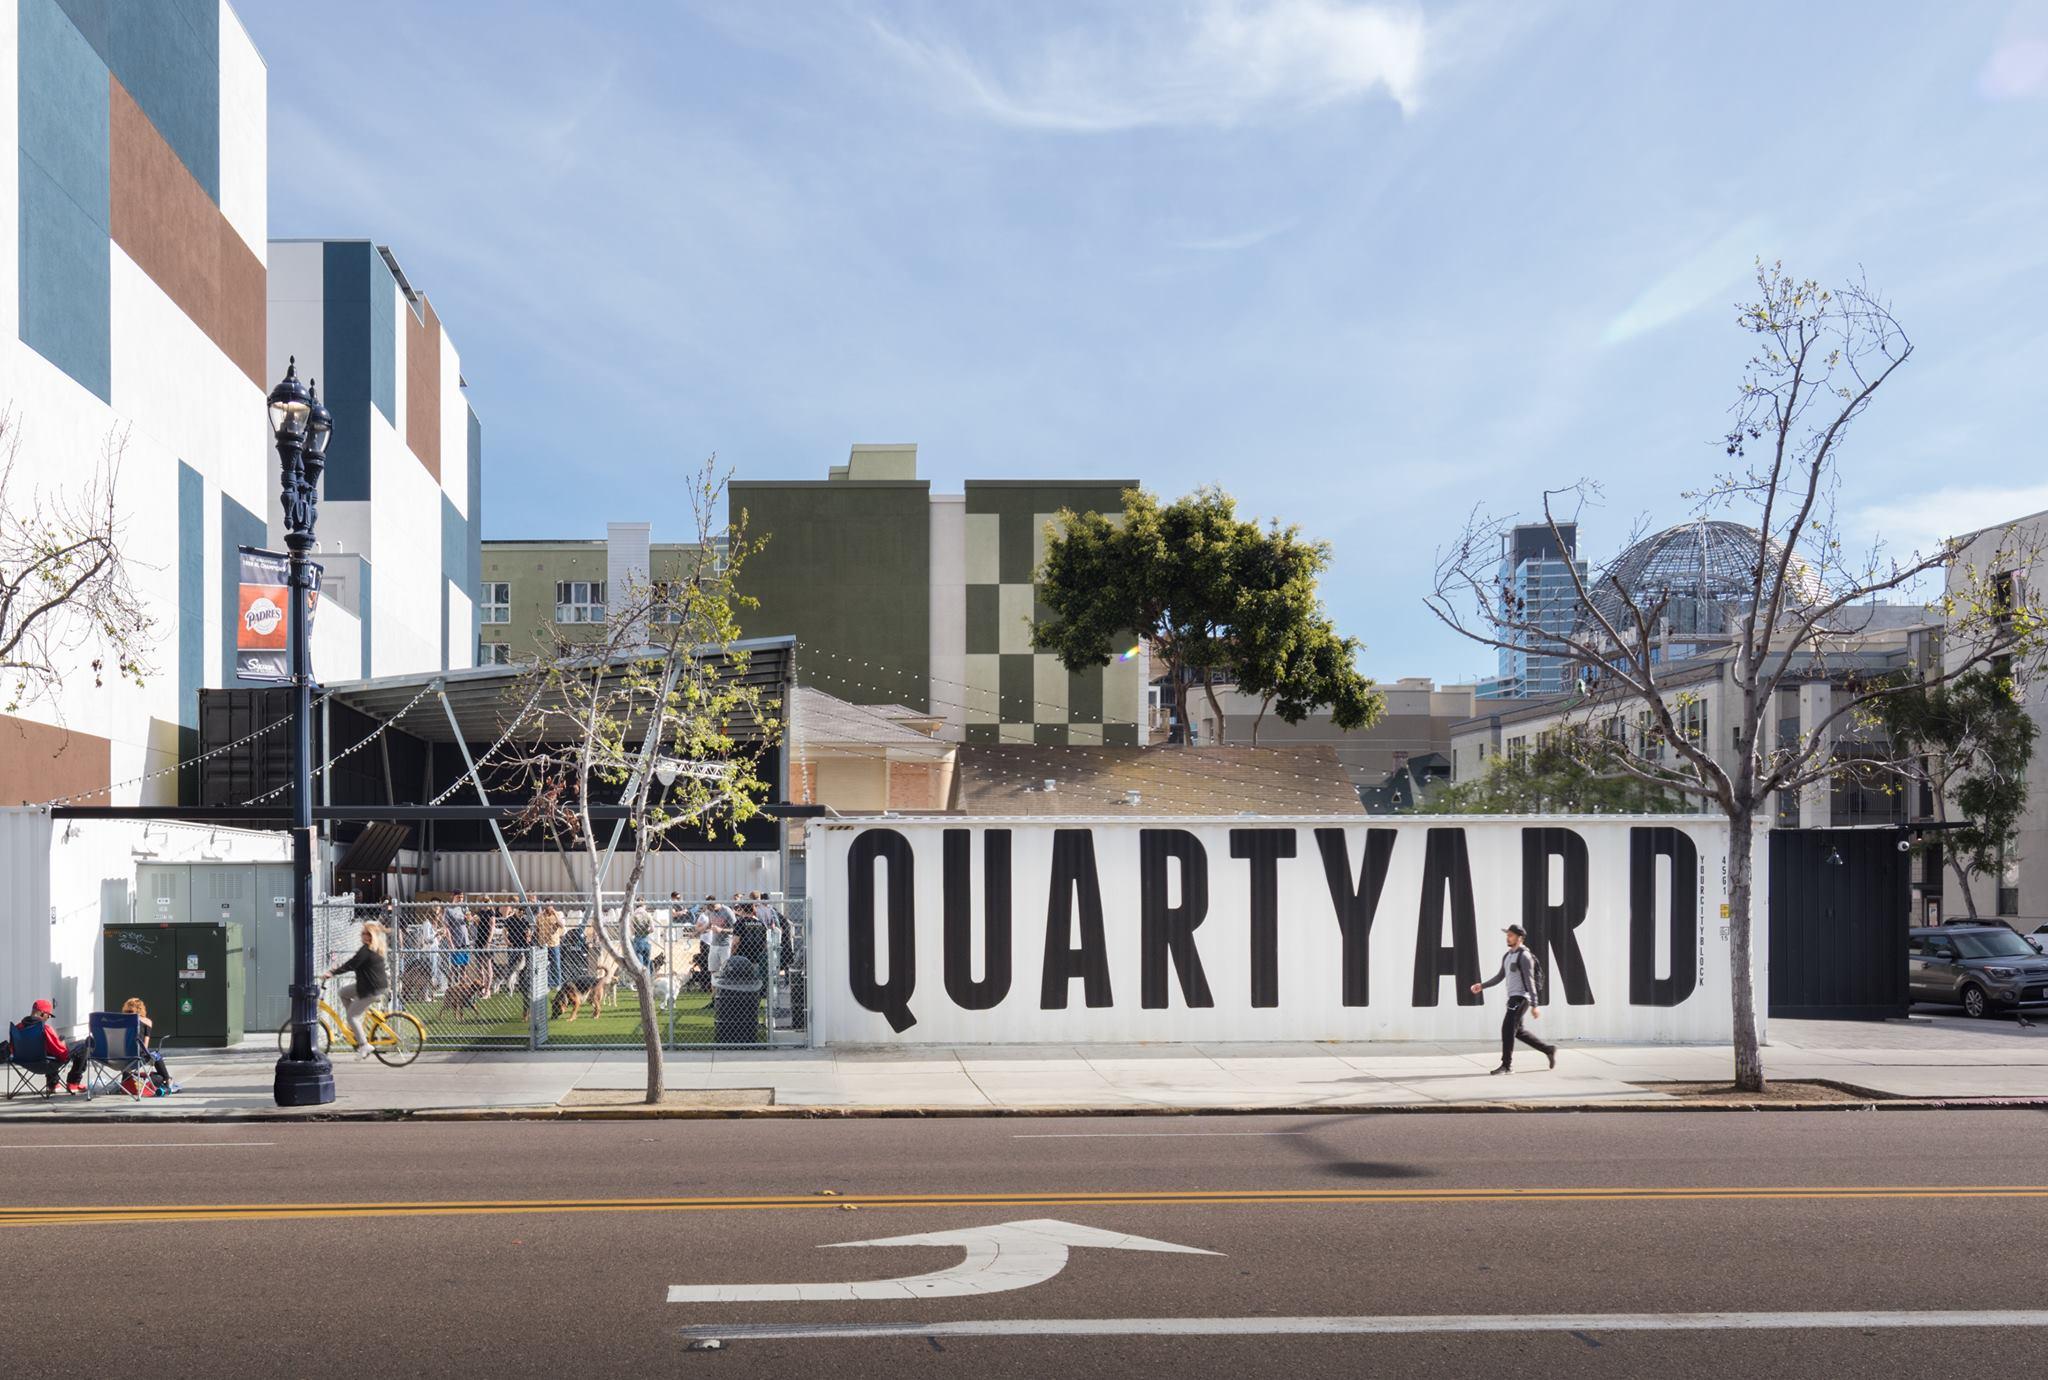 Best SD Restaurants Outdoor Seating: Quartyard